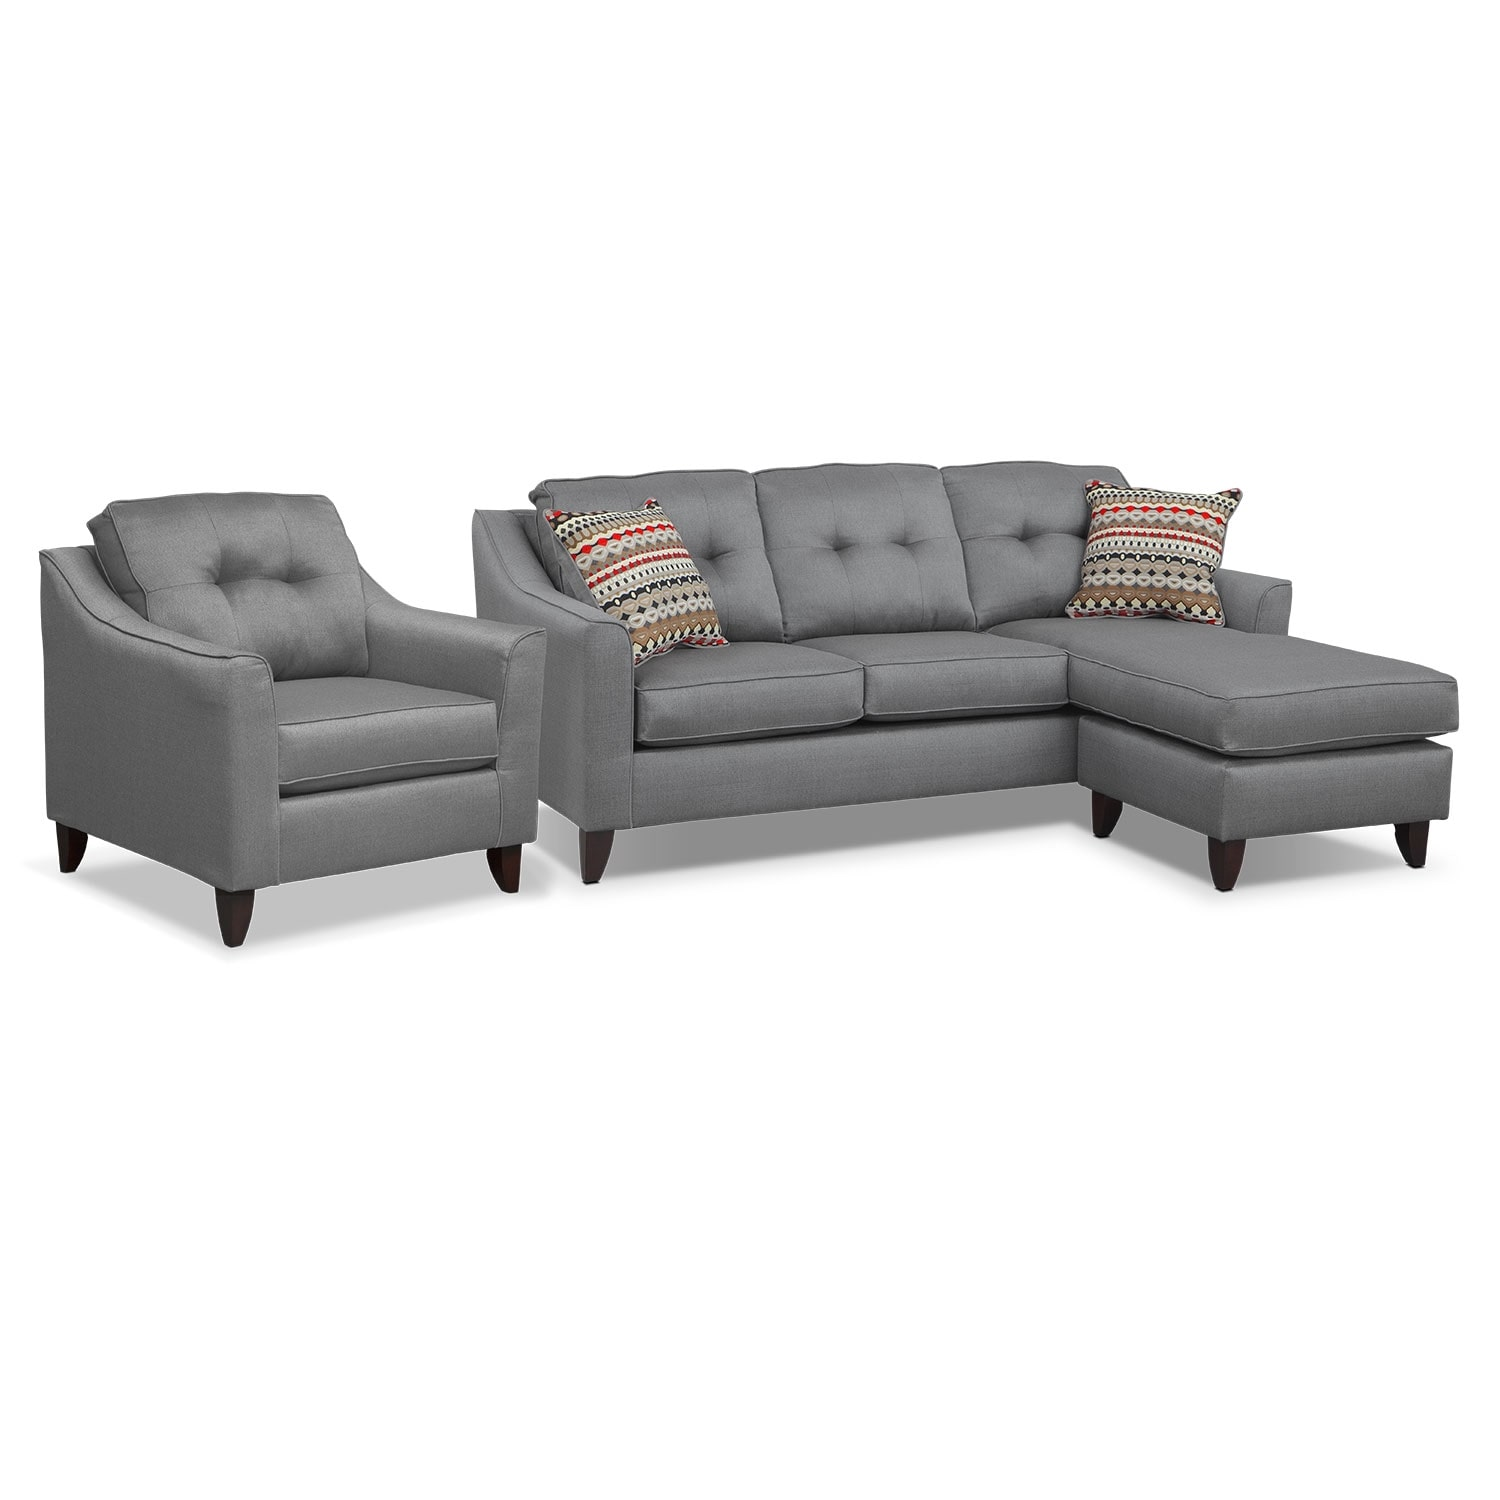 Marco Chaise Sofa and Chair Set Gray